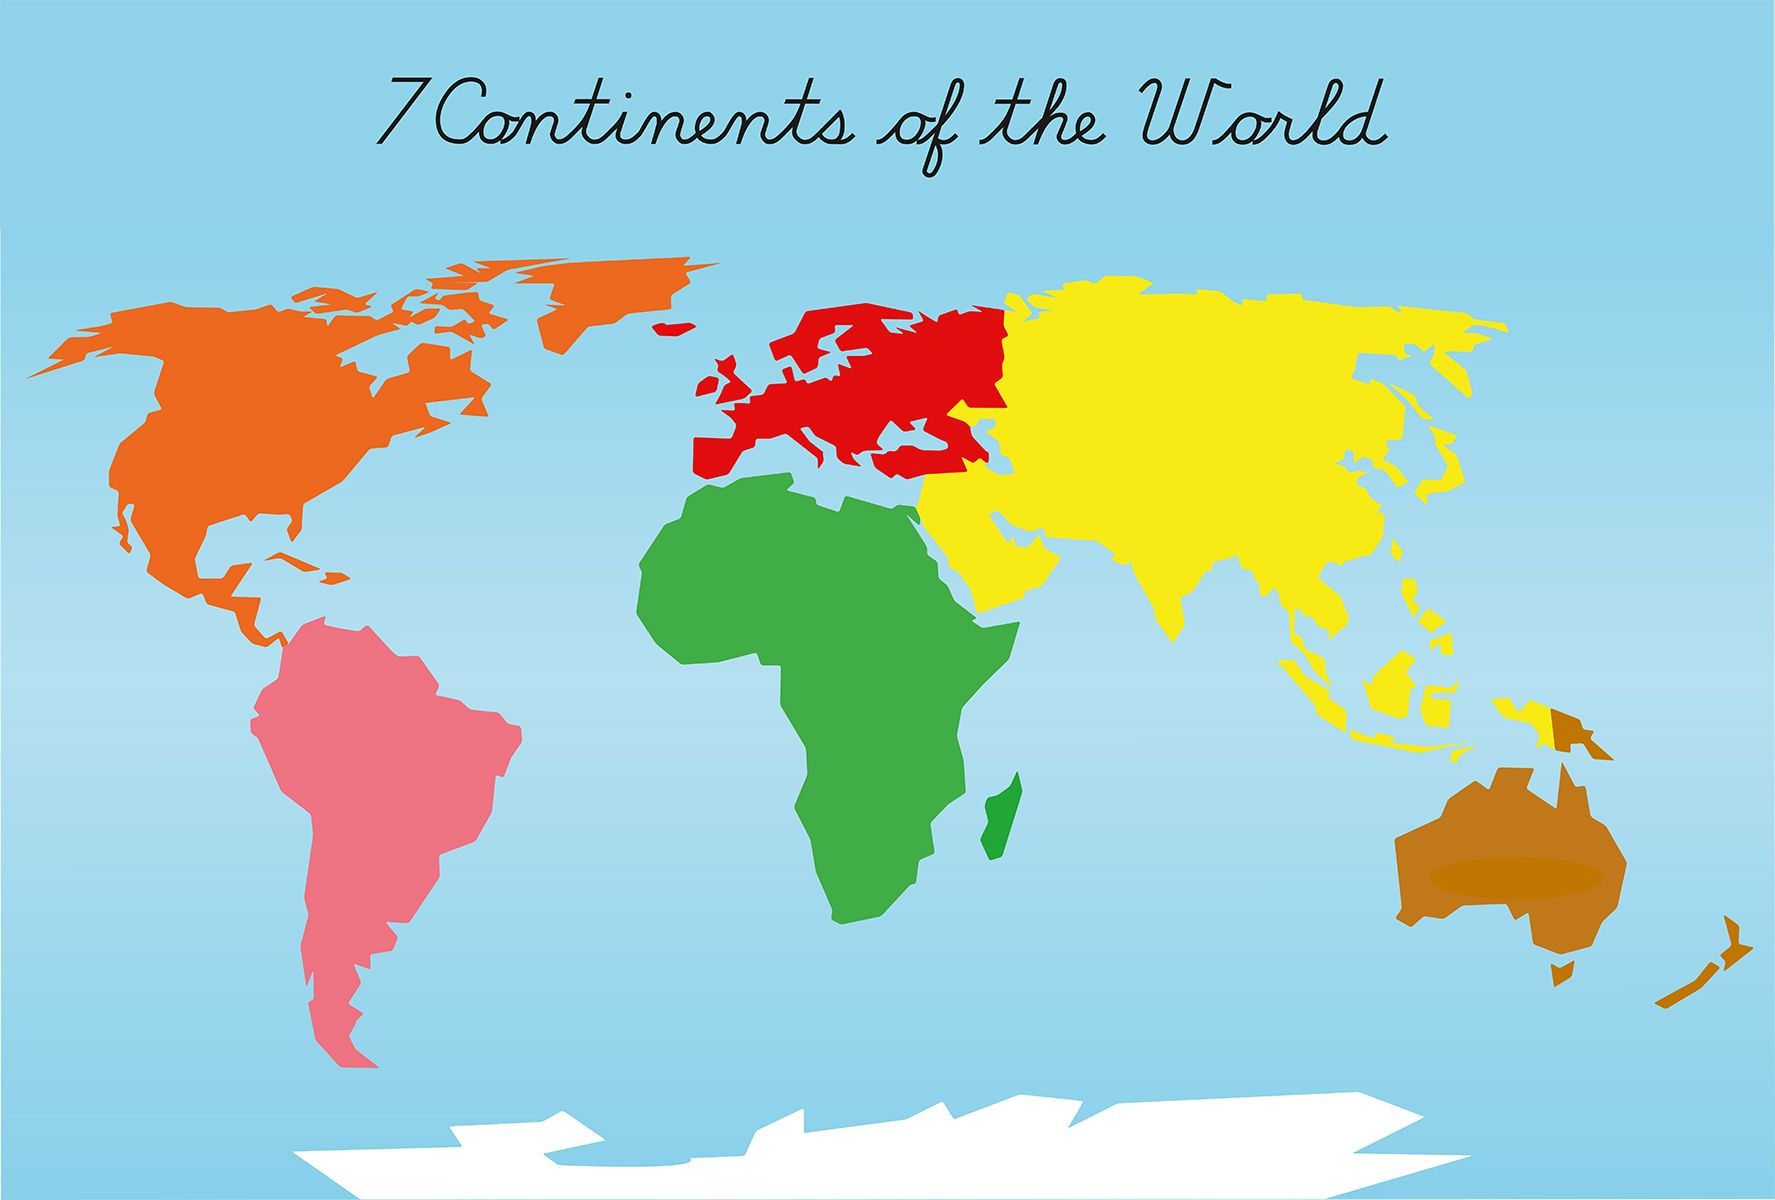 Montessori Puzzle Maps - 7 Continents Of The World | Montessori - Montessori World Map Free Printable